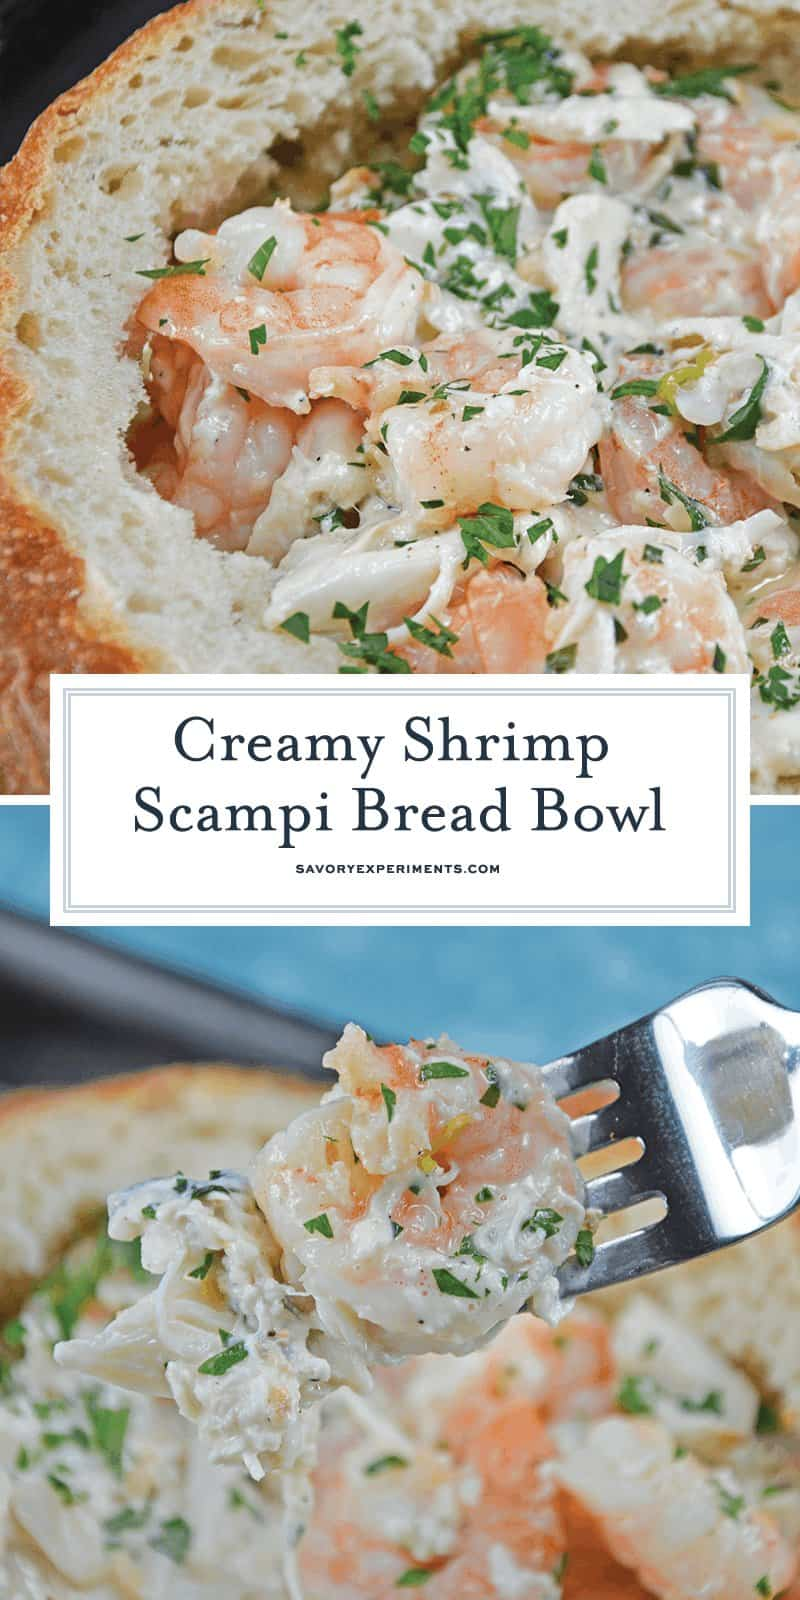 This Creamy Shrimp Scampi Bread Bowl can be an easy appetizer or entree, dipping bread in the rich scampi sauce with succulent shrimp. #shrimpscampi #shrimpappetizer www.savoryexperiments.com